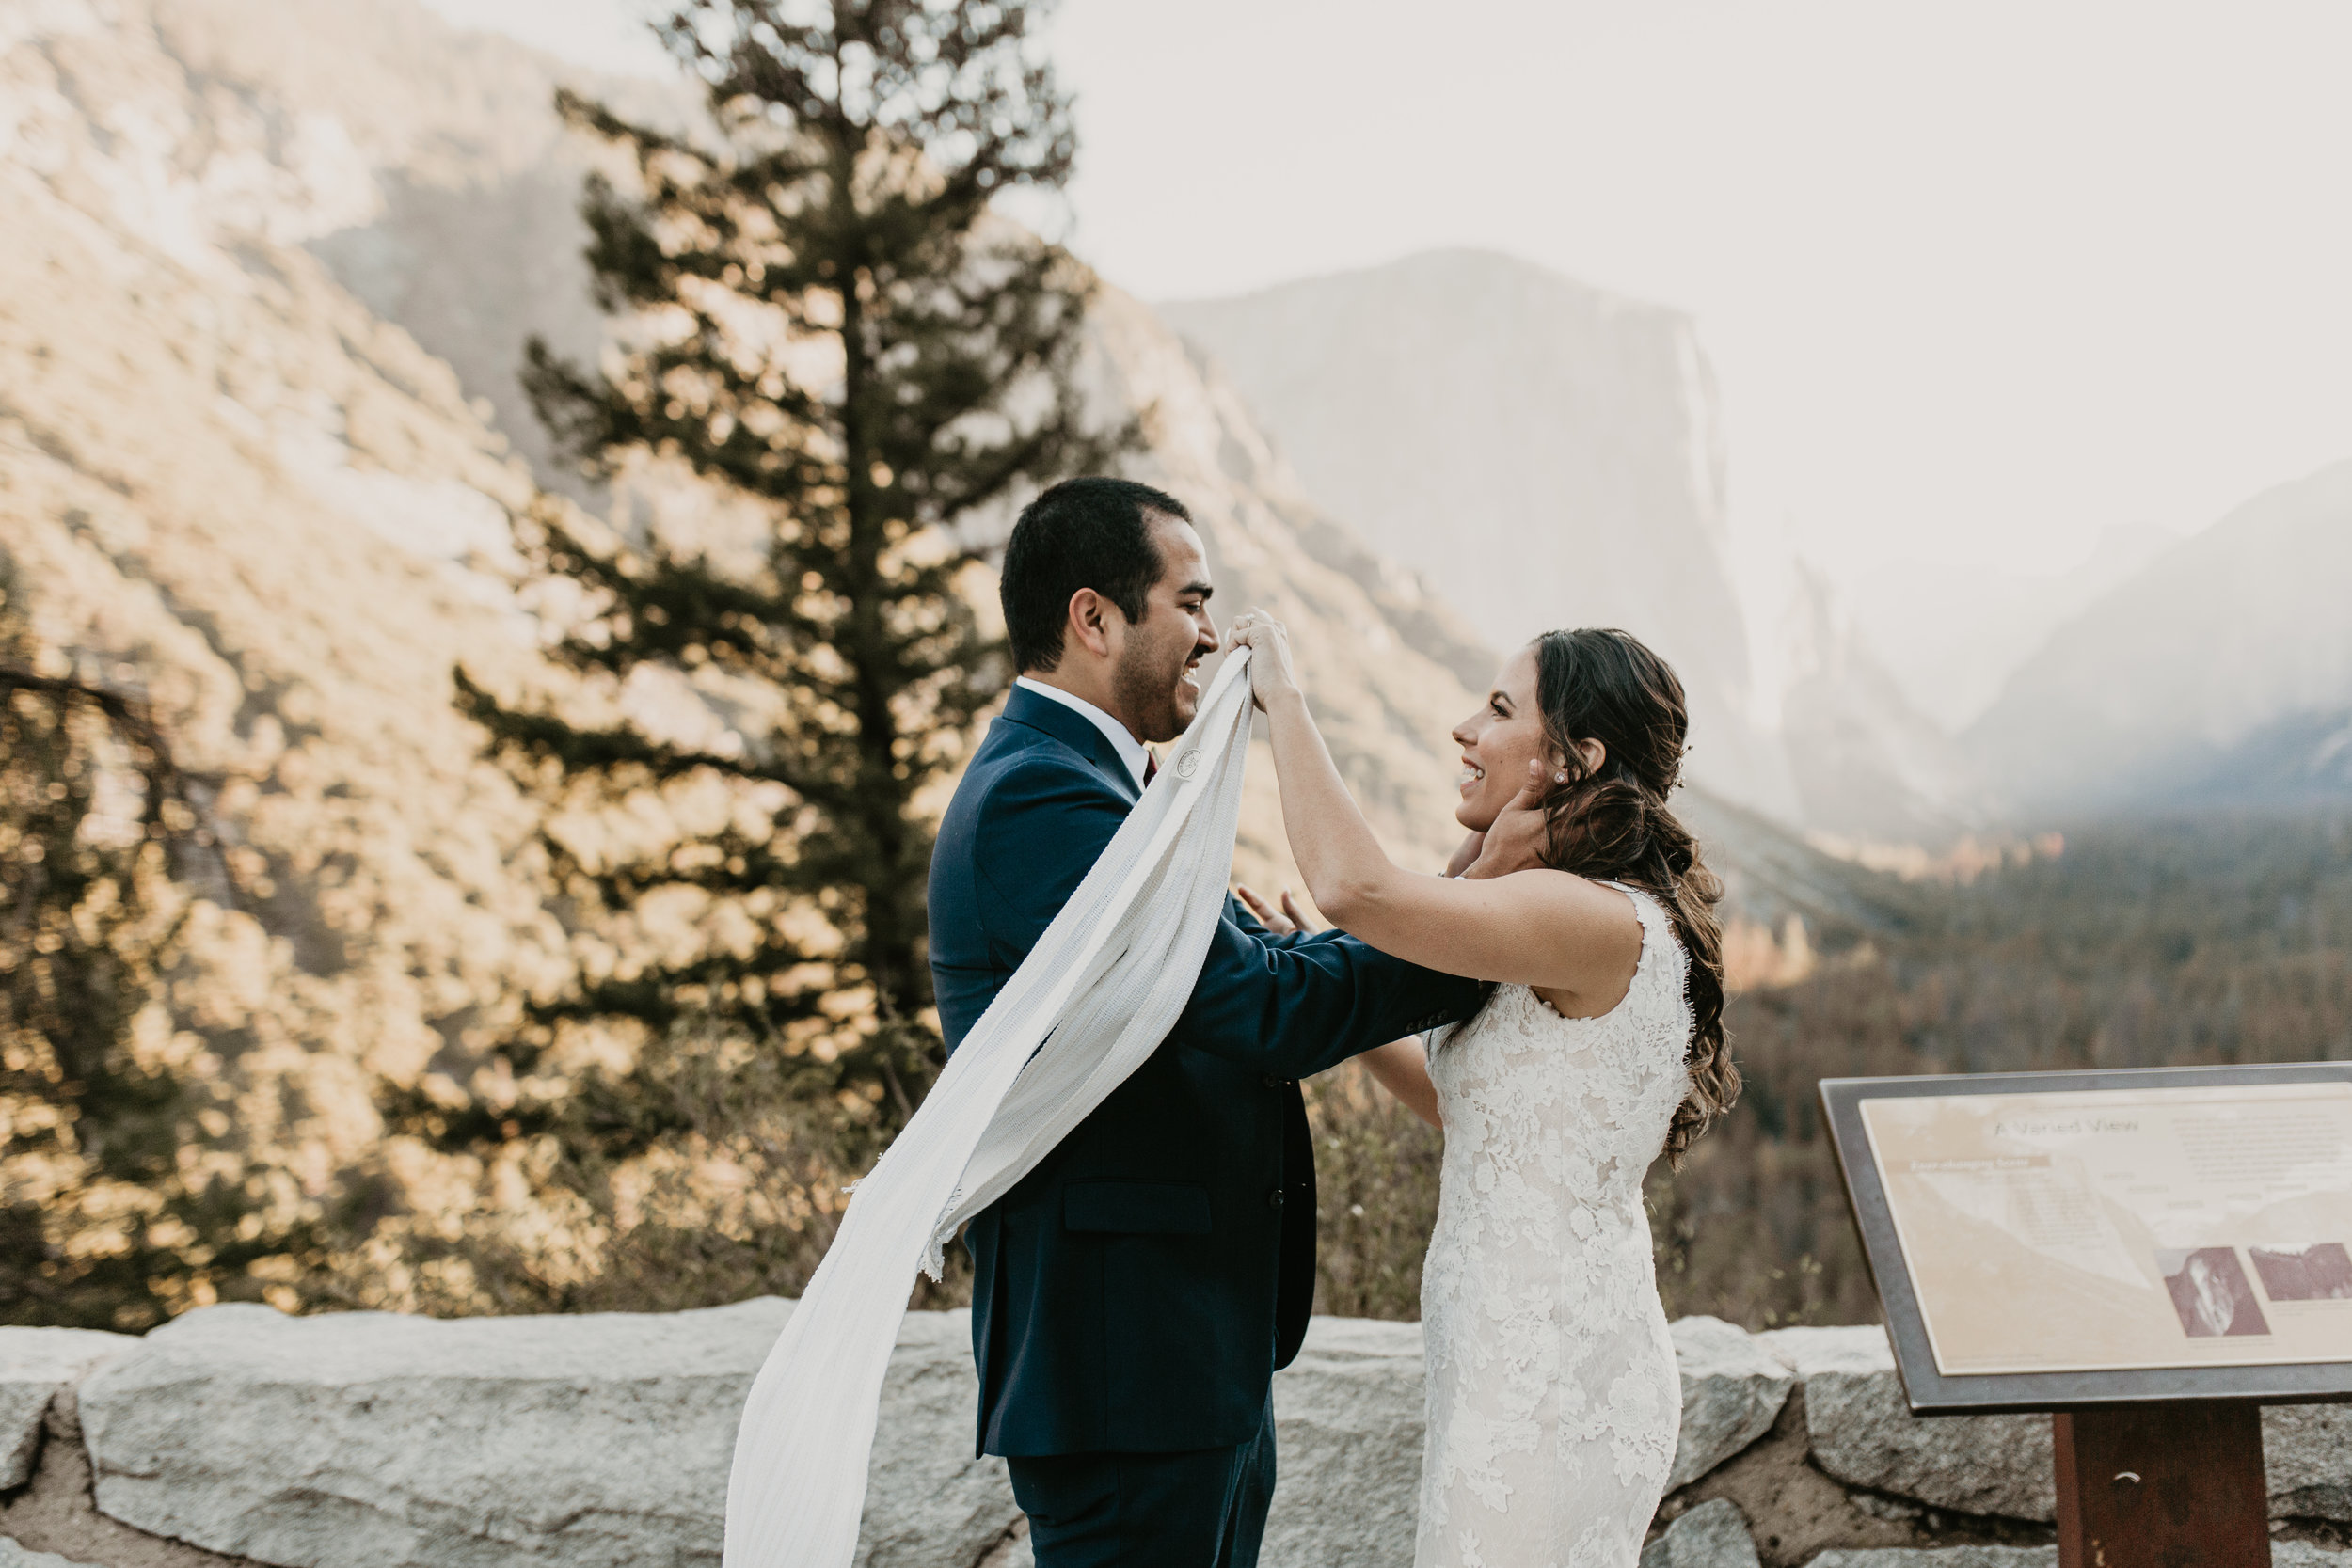 nicole-daacke-photography-intimate-elopement-wedding-yosemite-national-park-california-taft-point-sunset-photos-yosemite-valley-tunnel-view-first-look-sunrise-golden-granite-hiking-adventure-wedding-adventurous-elopement-photographer-3.jpg